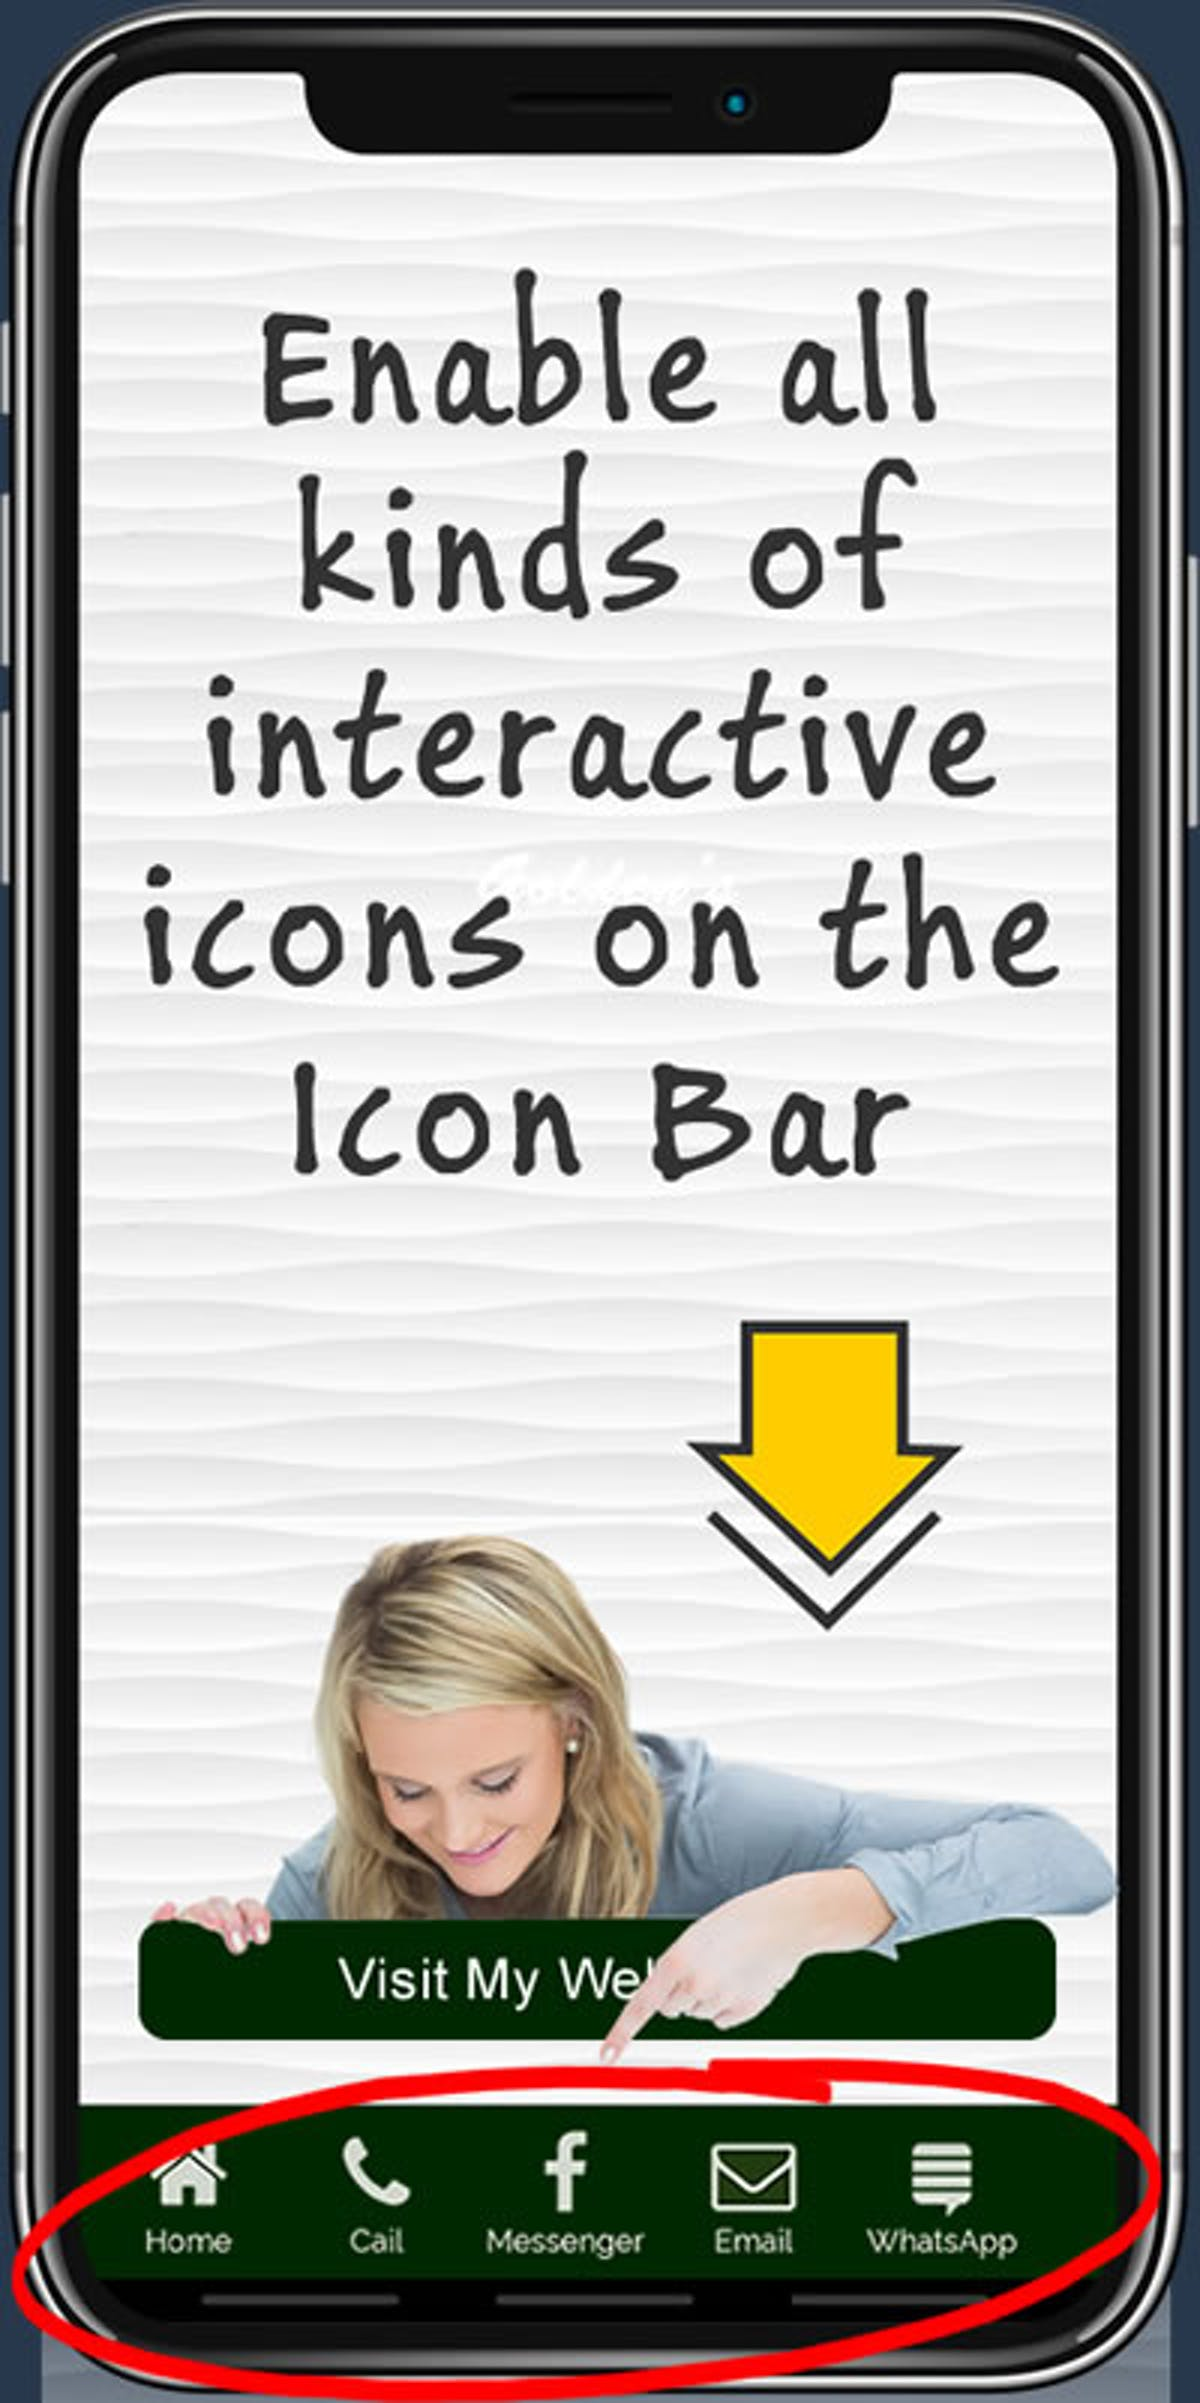 Enabling Interactive Features